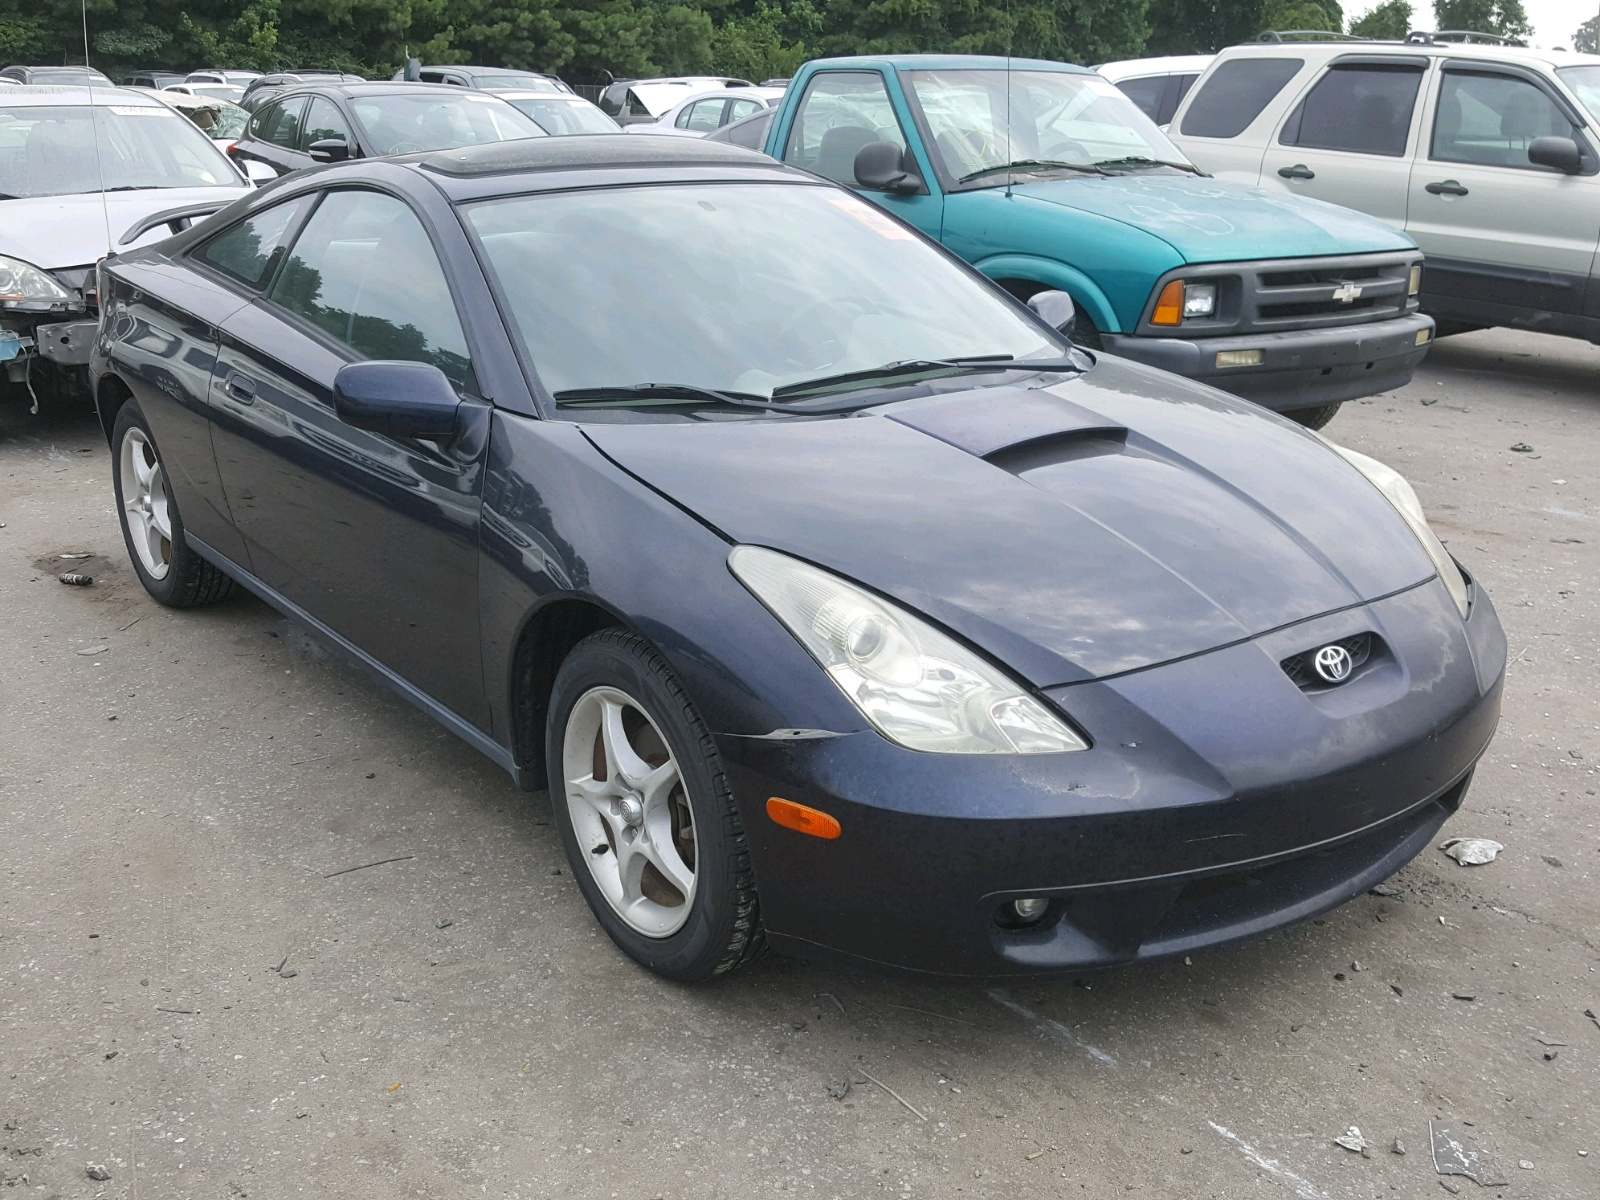 hight resolution of jtddy38t910042050 2001 toyota celica gt 1 8l left view jtddy38t910042050